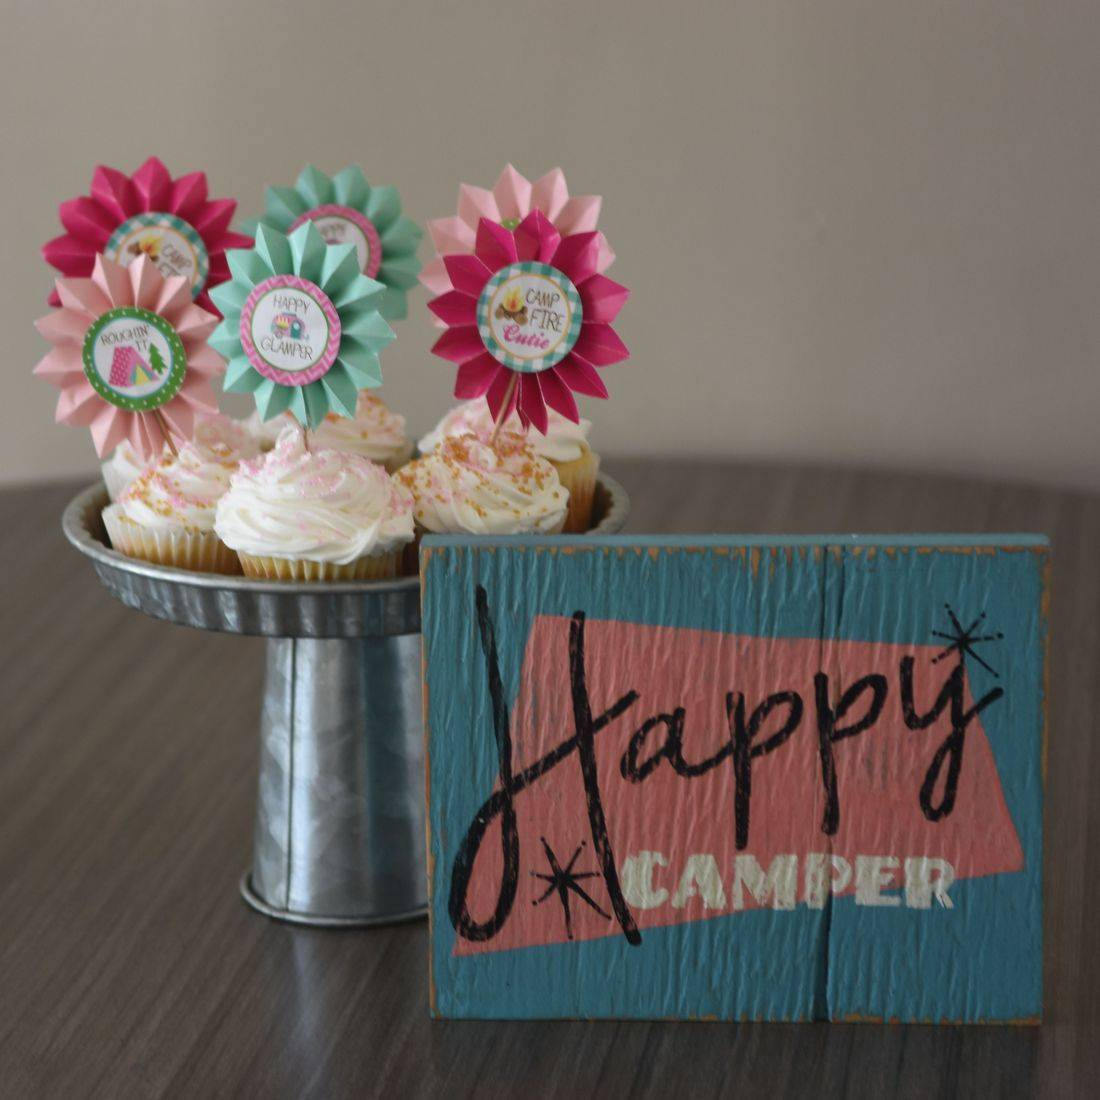 Kids party rentals, teepee rentals, party rentals, Happy Campers, Happy Glampers, Newport Beach, Orange County, teepees, indoor, campsites, fun, adventure, new, town, bakery, cupcakes